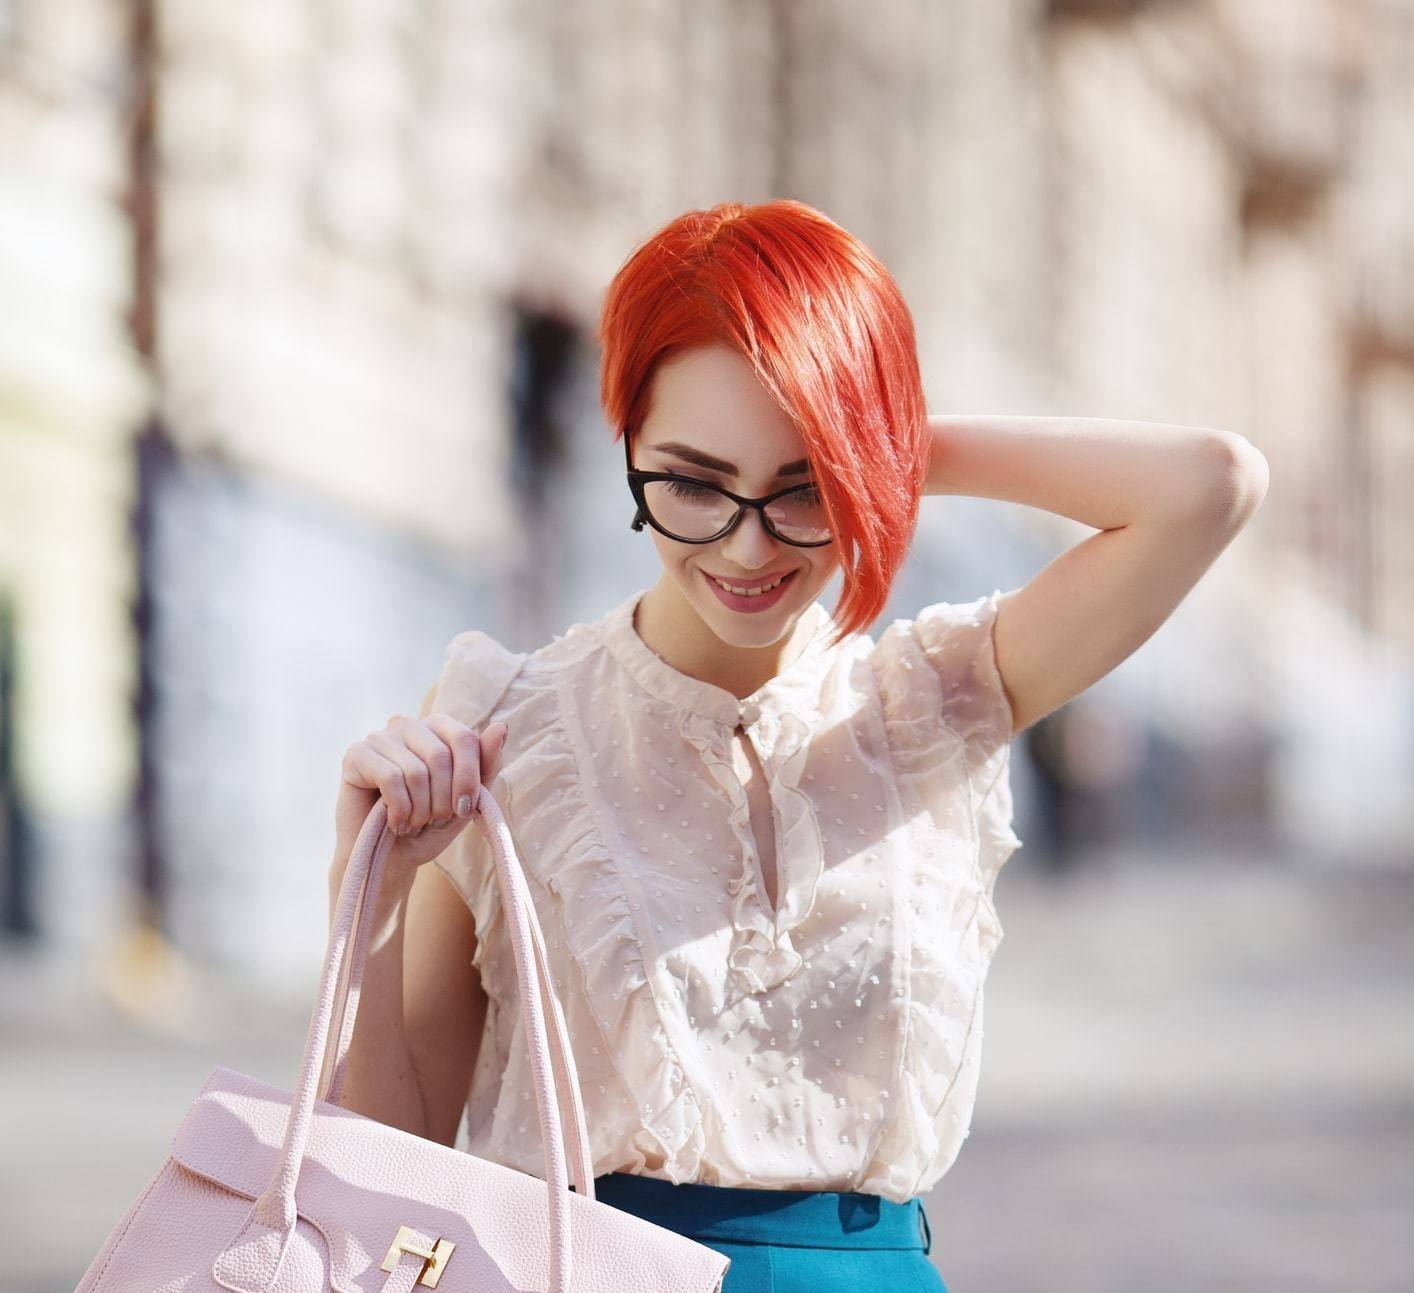 when it comes to short funky hairstyles, an asymmetric as demonstrated by this model with red short hair is very popular